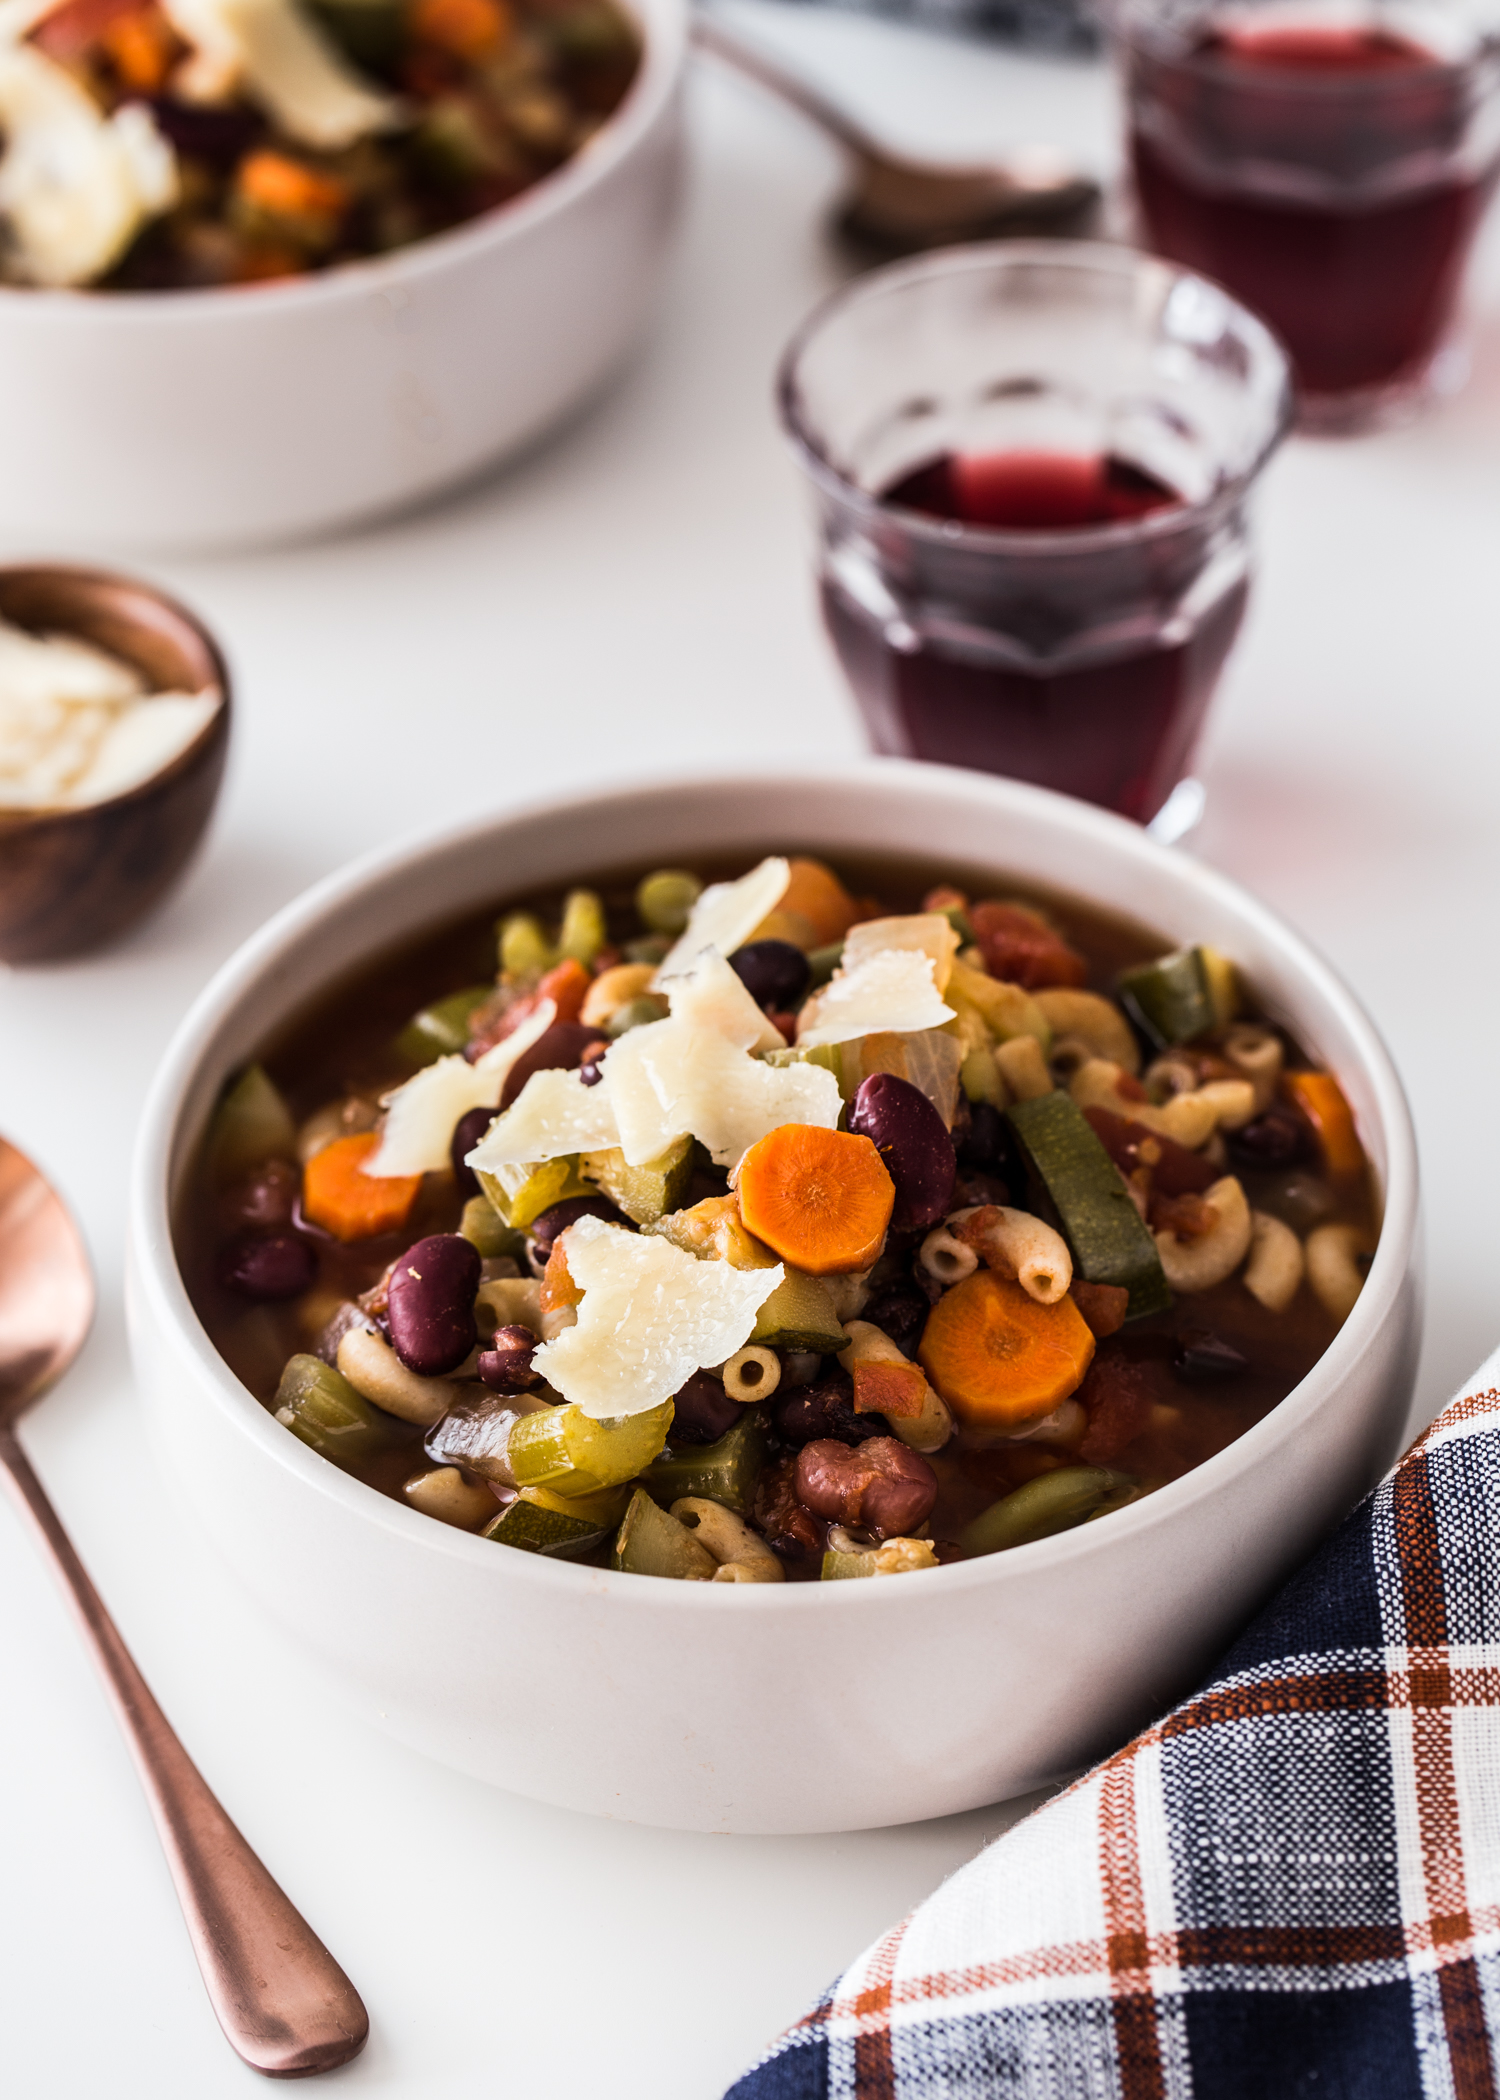 Slow Cooker Minestrone Soup full of vegetables, pasta, and topped with parmesan cheese